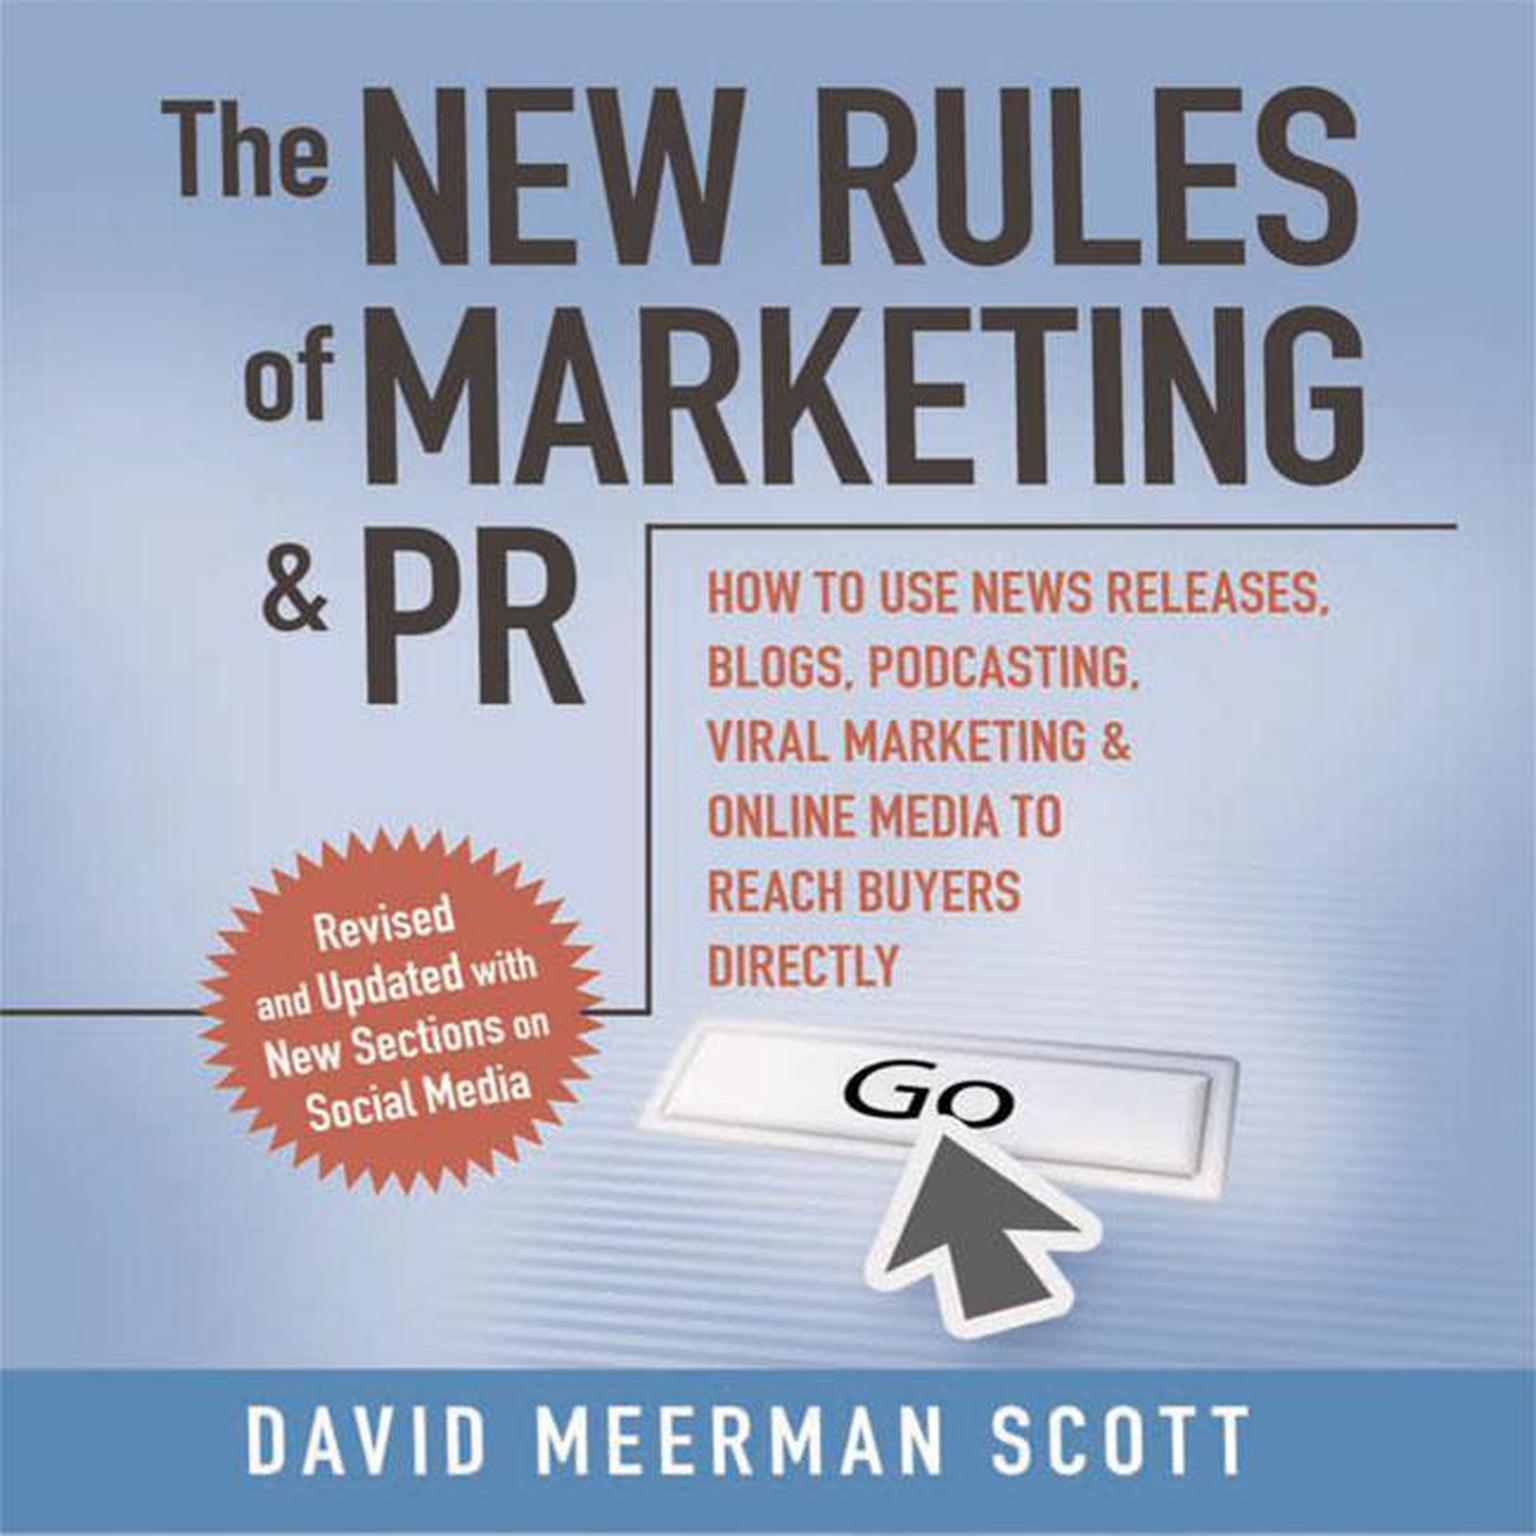 Printable The New Rules of Marketing & PR 2.0: How to Use News Releases, Blogs, Podcasting, Viral Marketing and Online Media to Reach Buyers Directly Audiobook Cover Art